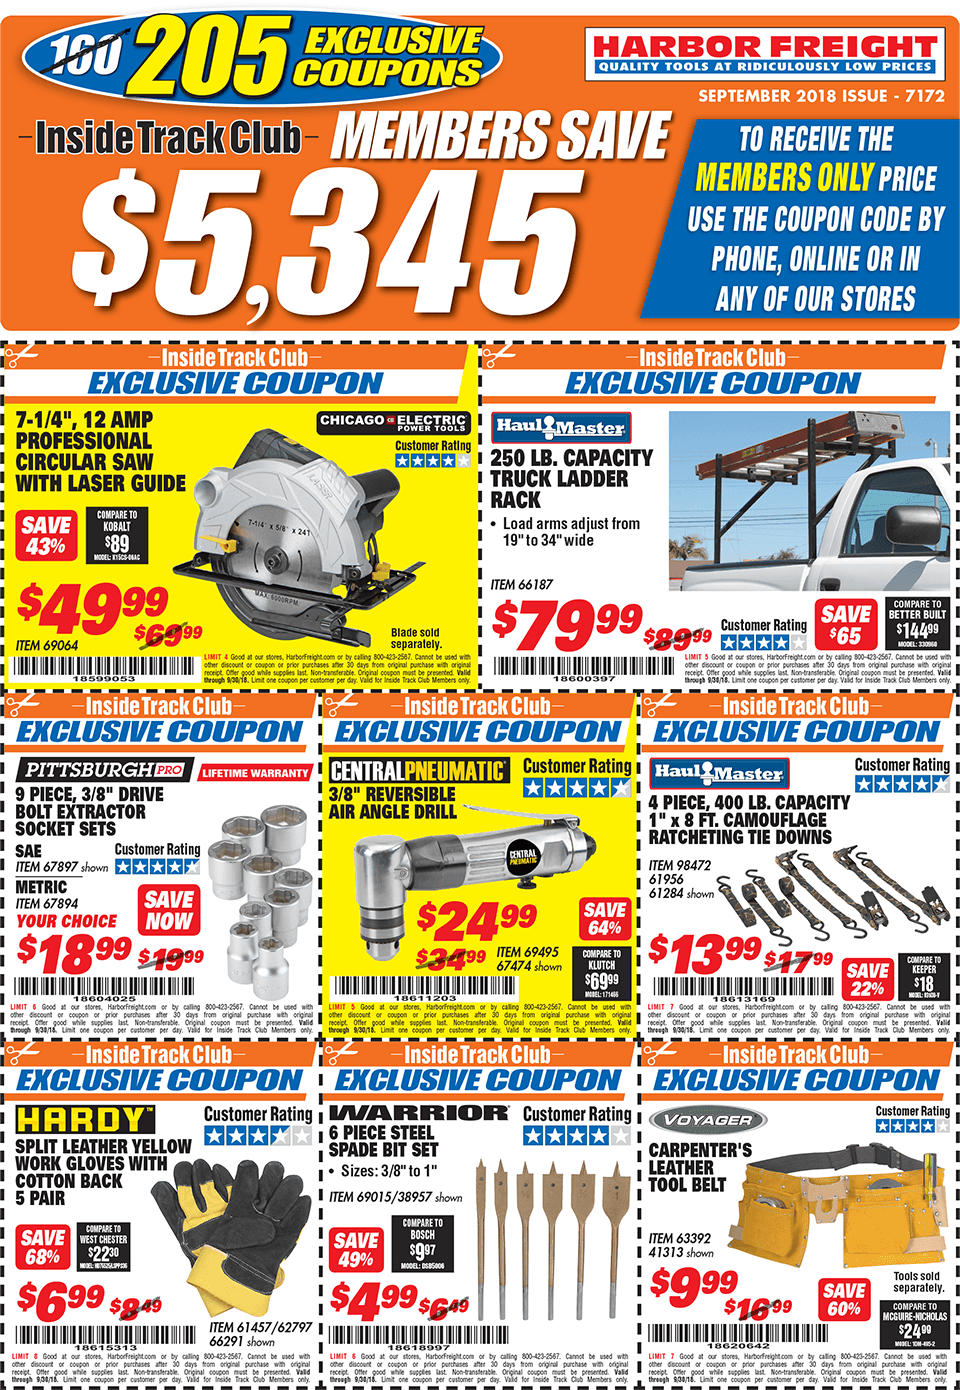 Harbor Freight Coupon Thread - Page 802 - Slickdeals net